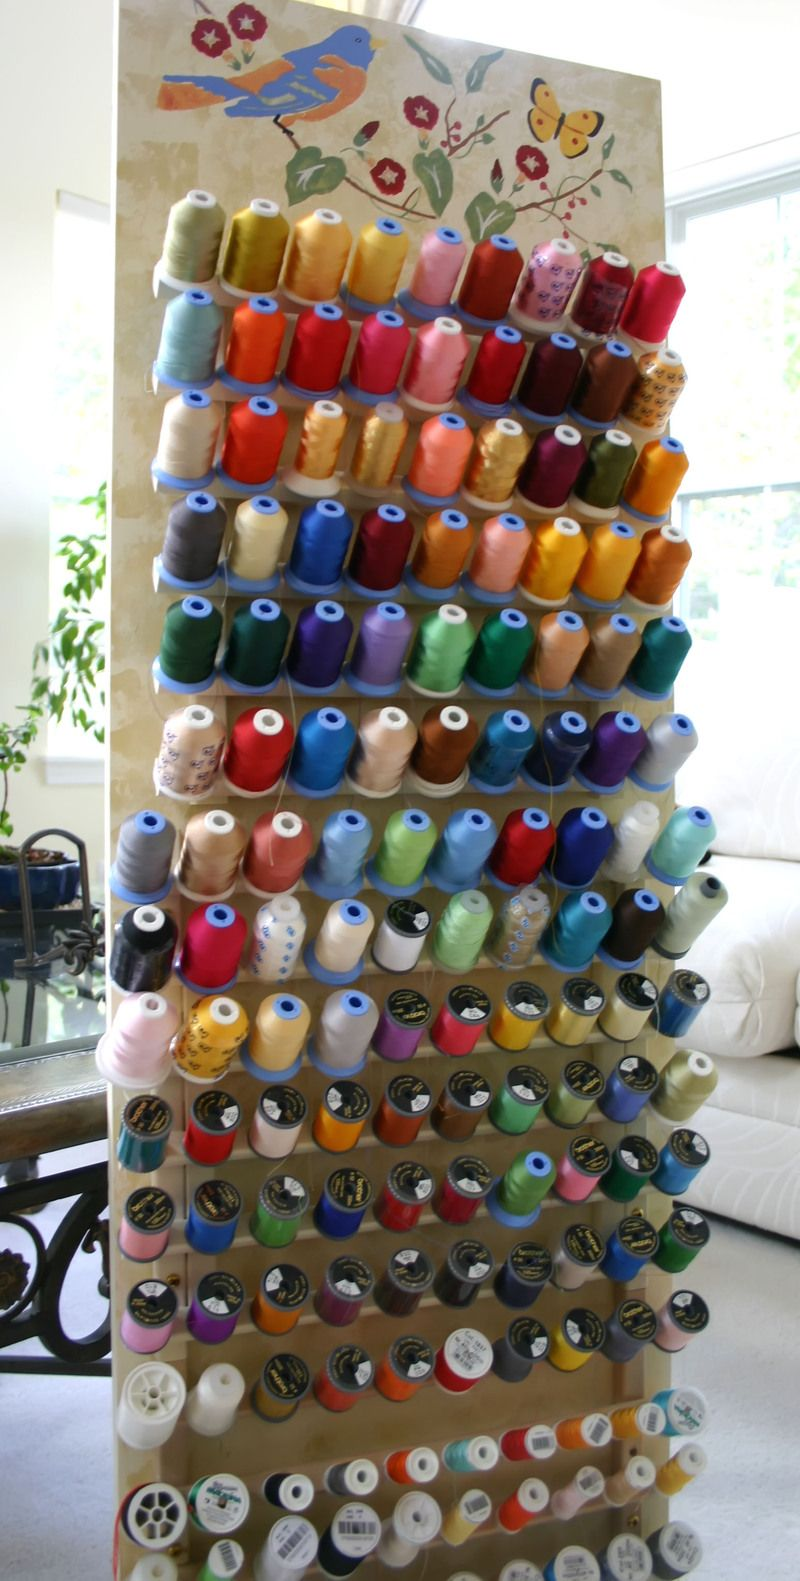 Never bored with a board of thread easy yarn crafts